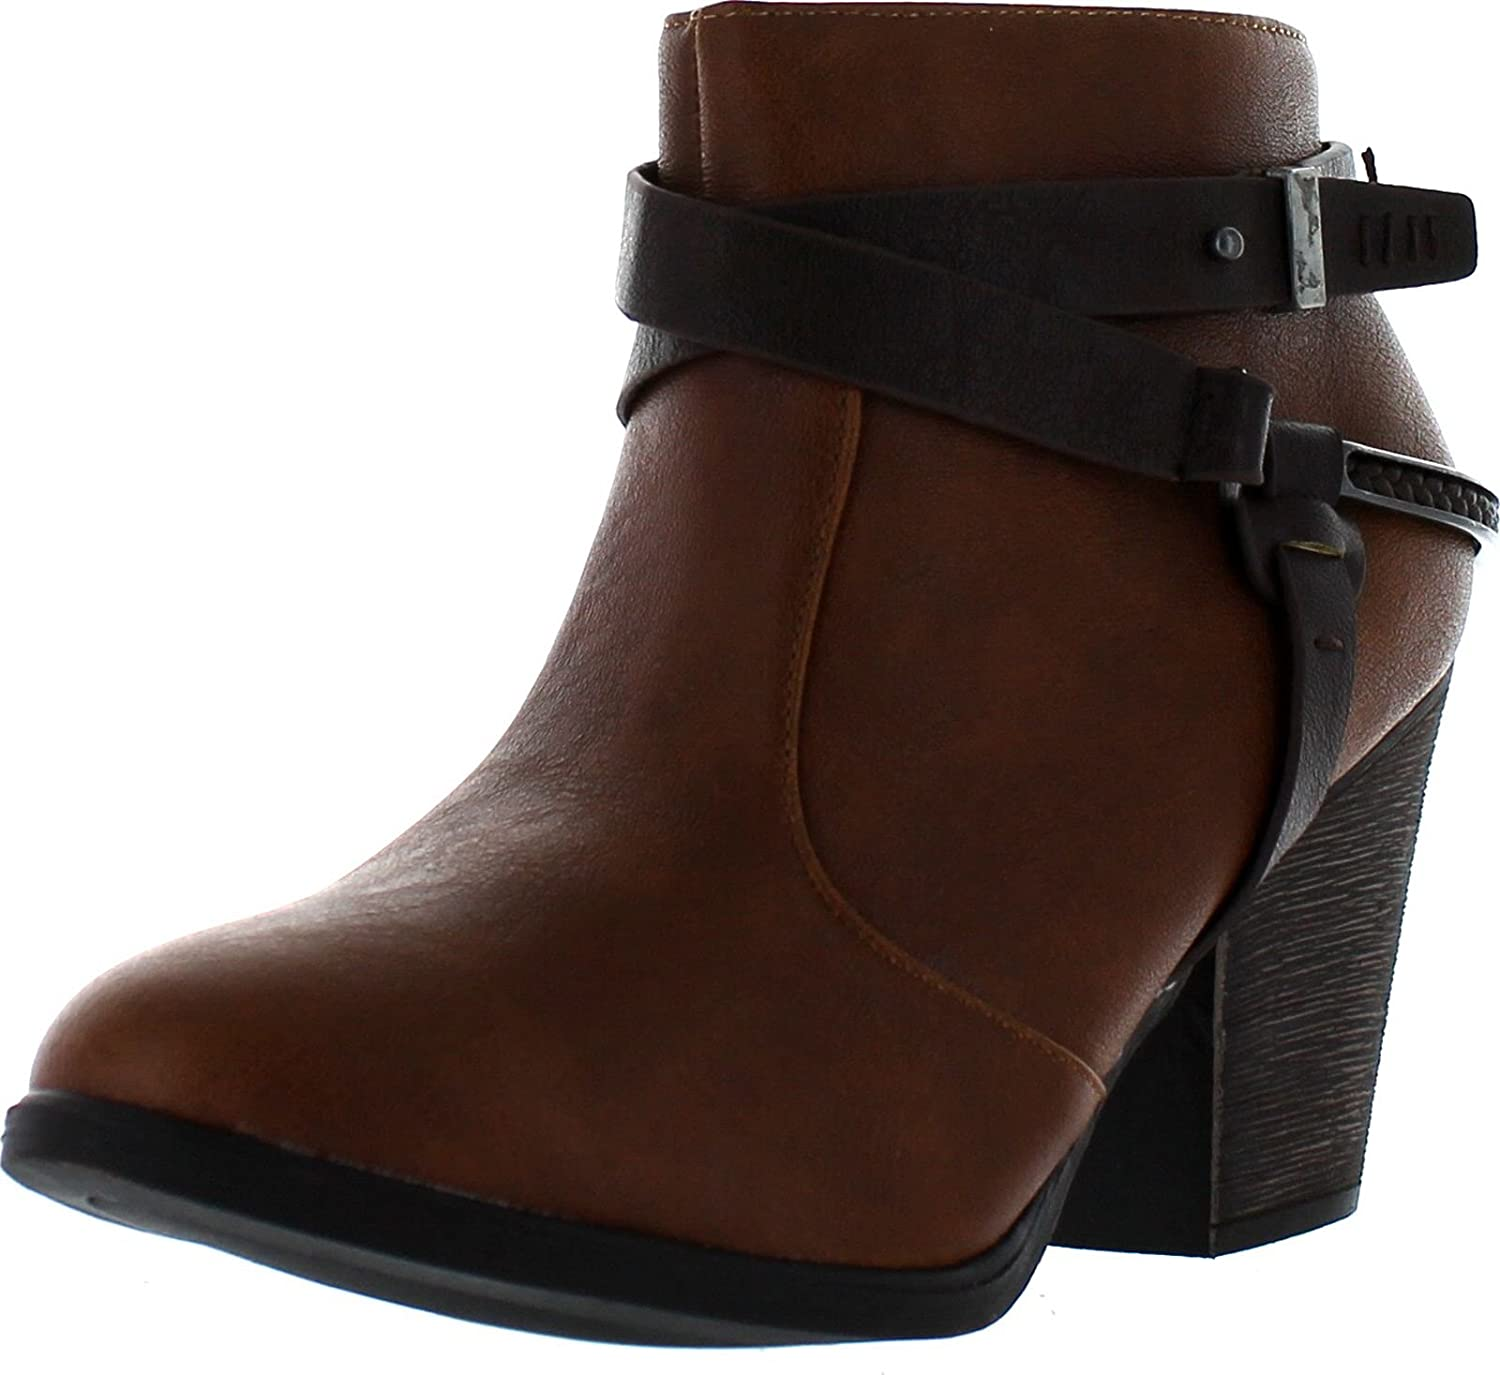 Dollhouse Womens Purpose Strappy Buckle Chunky Heel Fashion Bootie